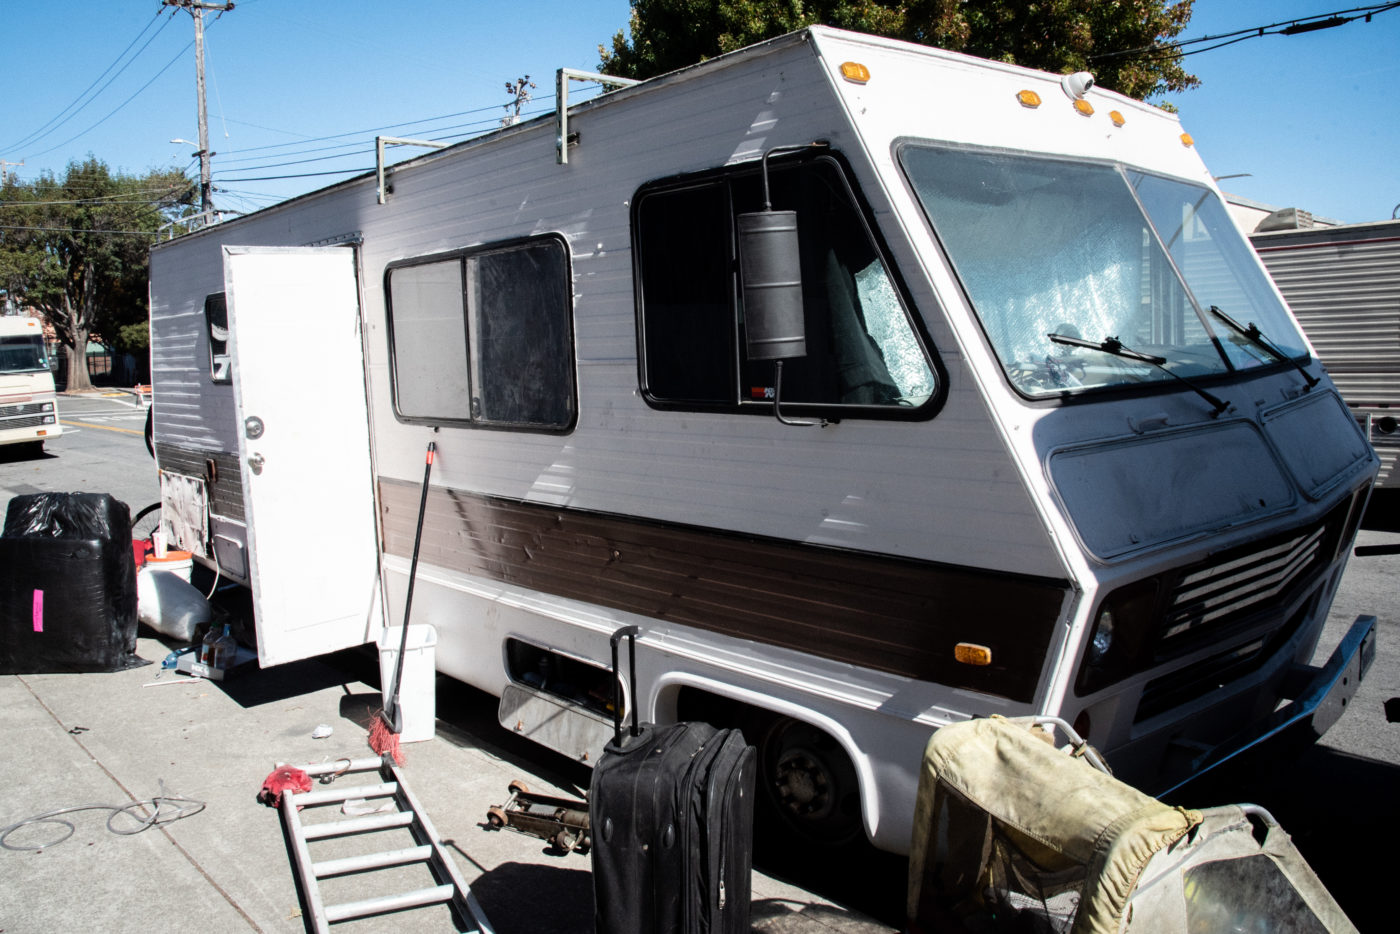 Chris's RV is currently undergoing repairs, and is currently used for storage